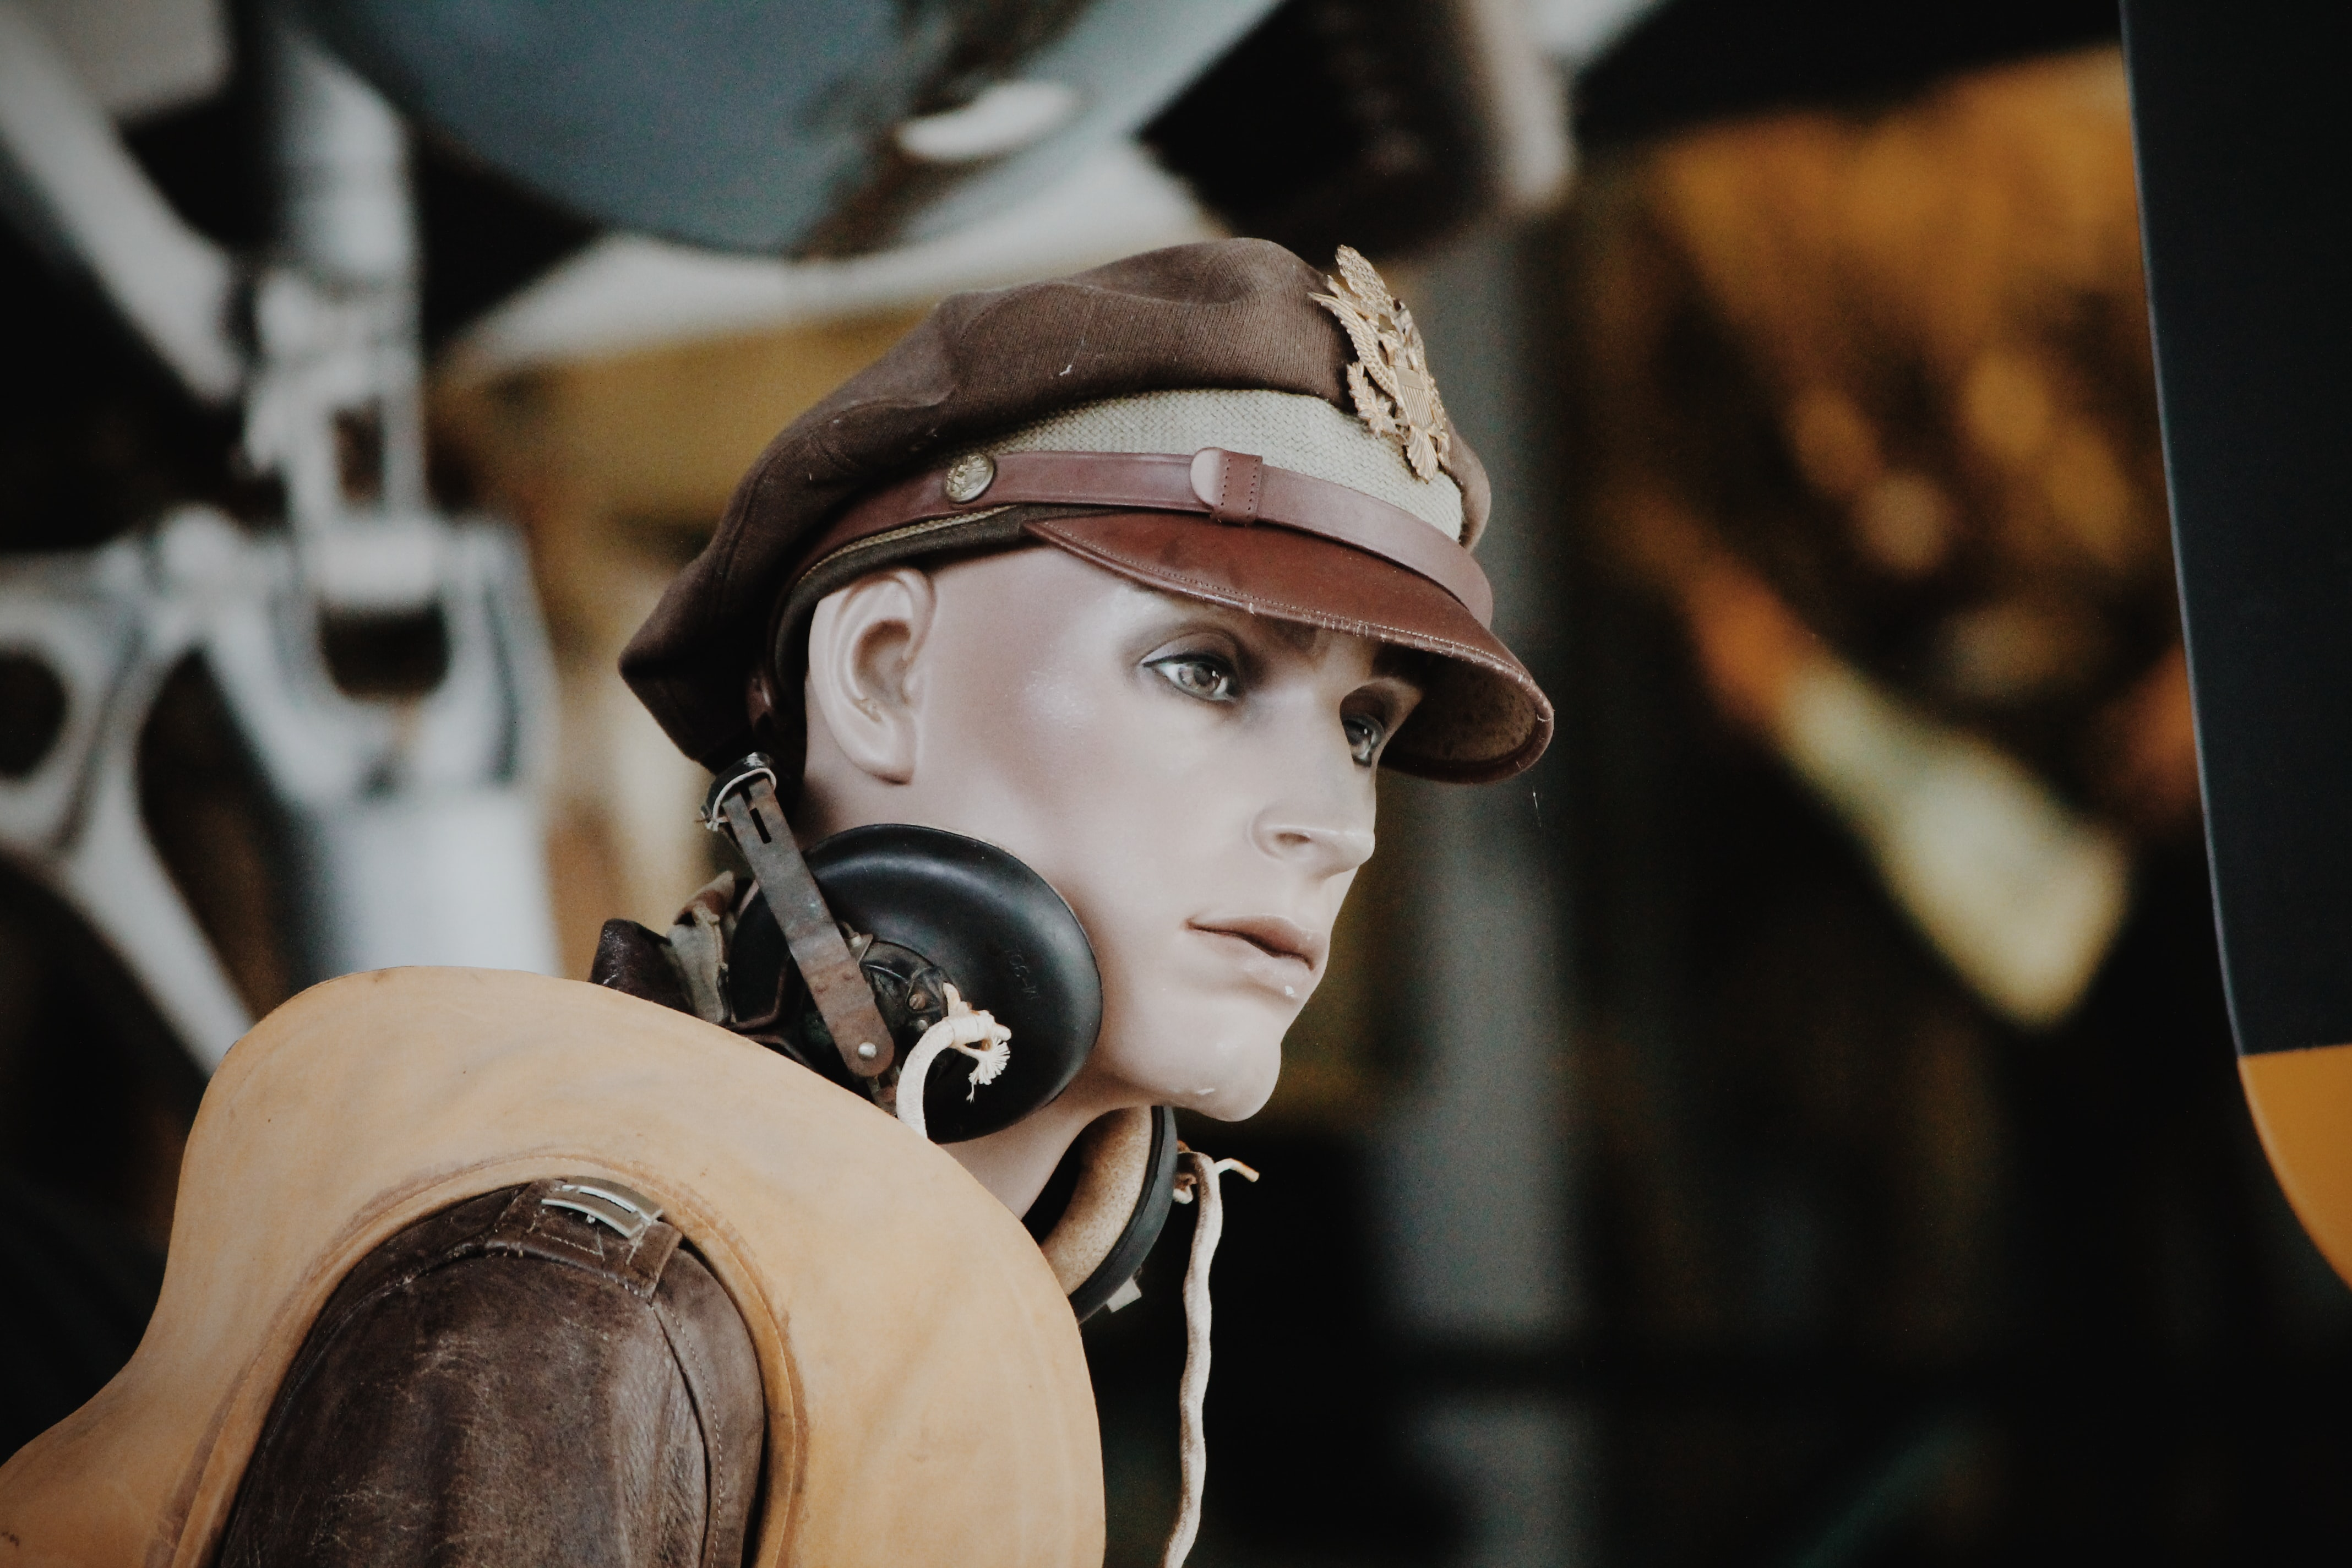 Creepy mannequin posed in a vintage pilot outfit